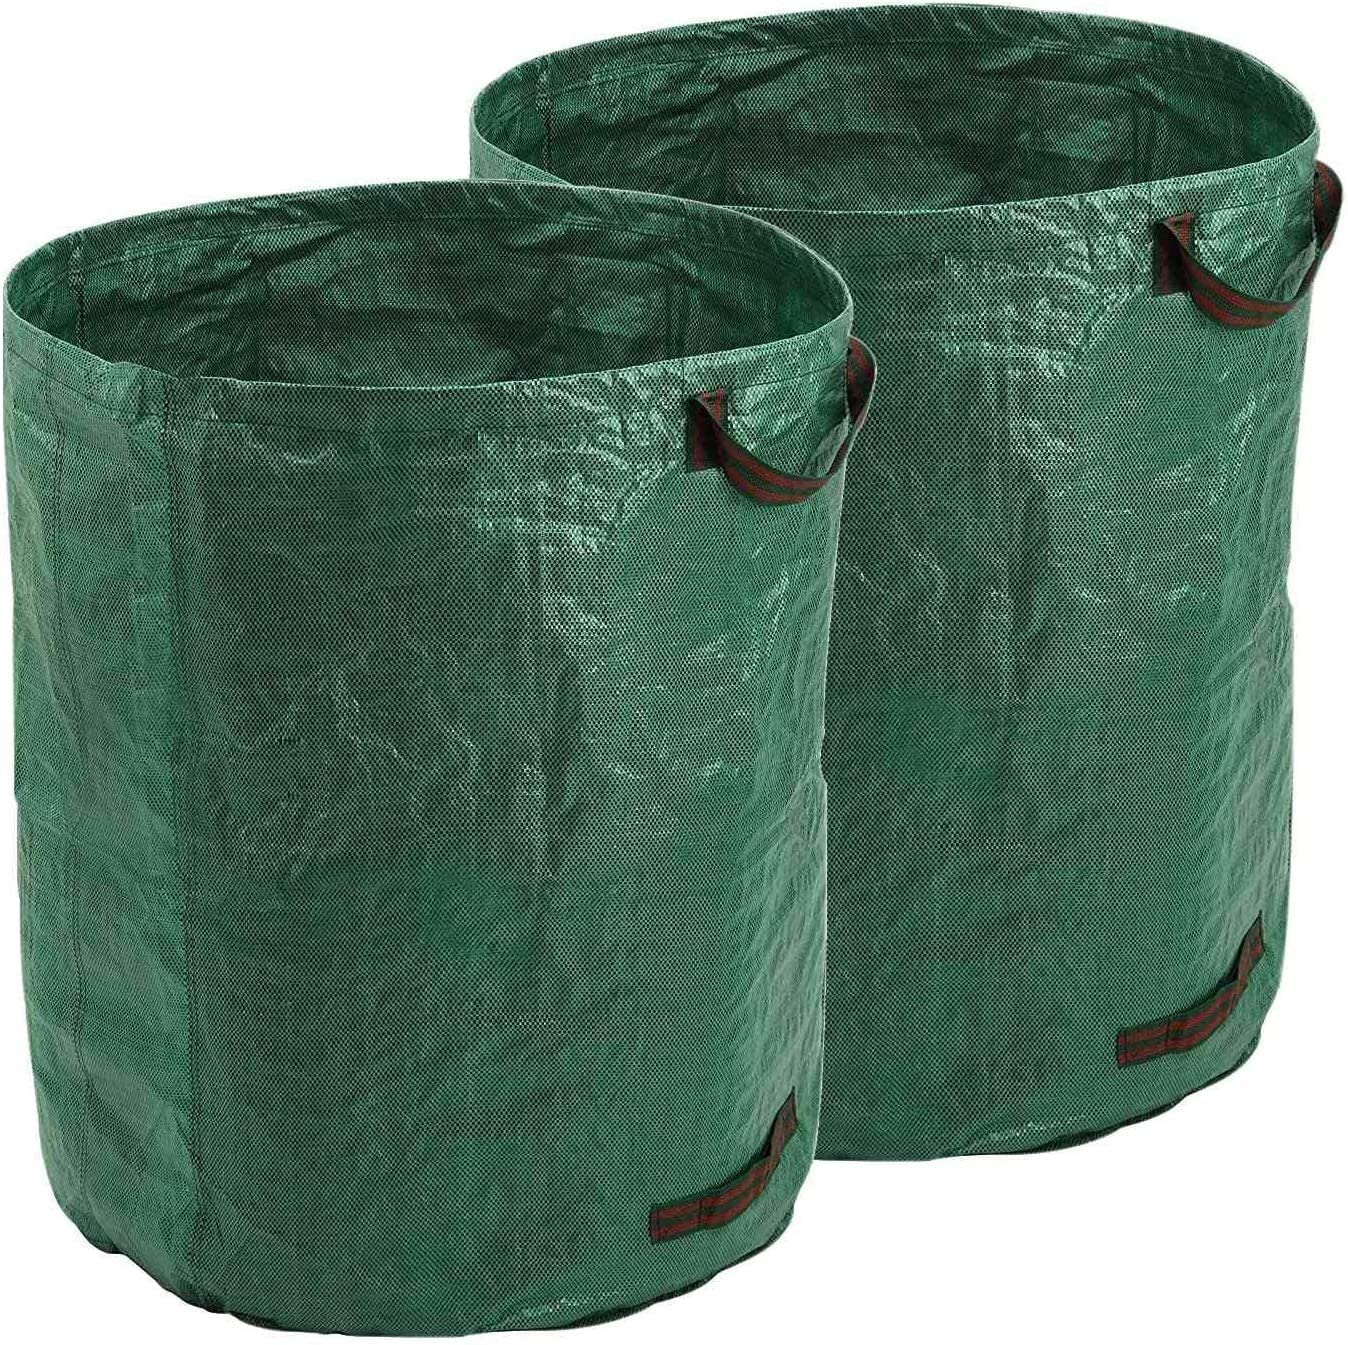 Zxcv 2 Pack 132 Gallon Collapsible Garden Bag Reusable Trash Can Durable Yard Waste Leaf Bags for Gardening Home or Camping